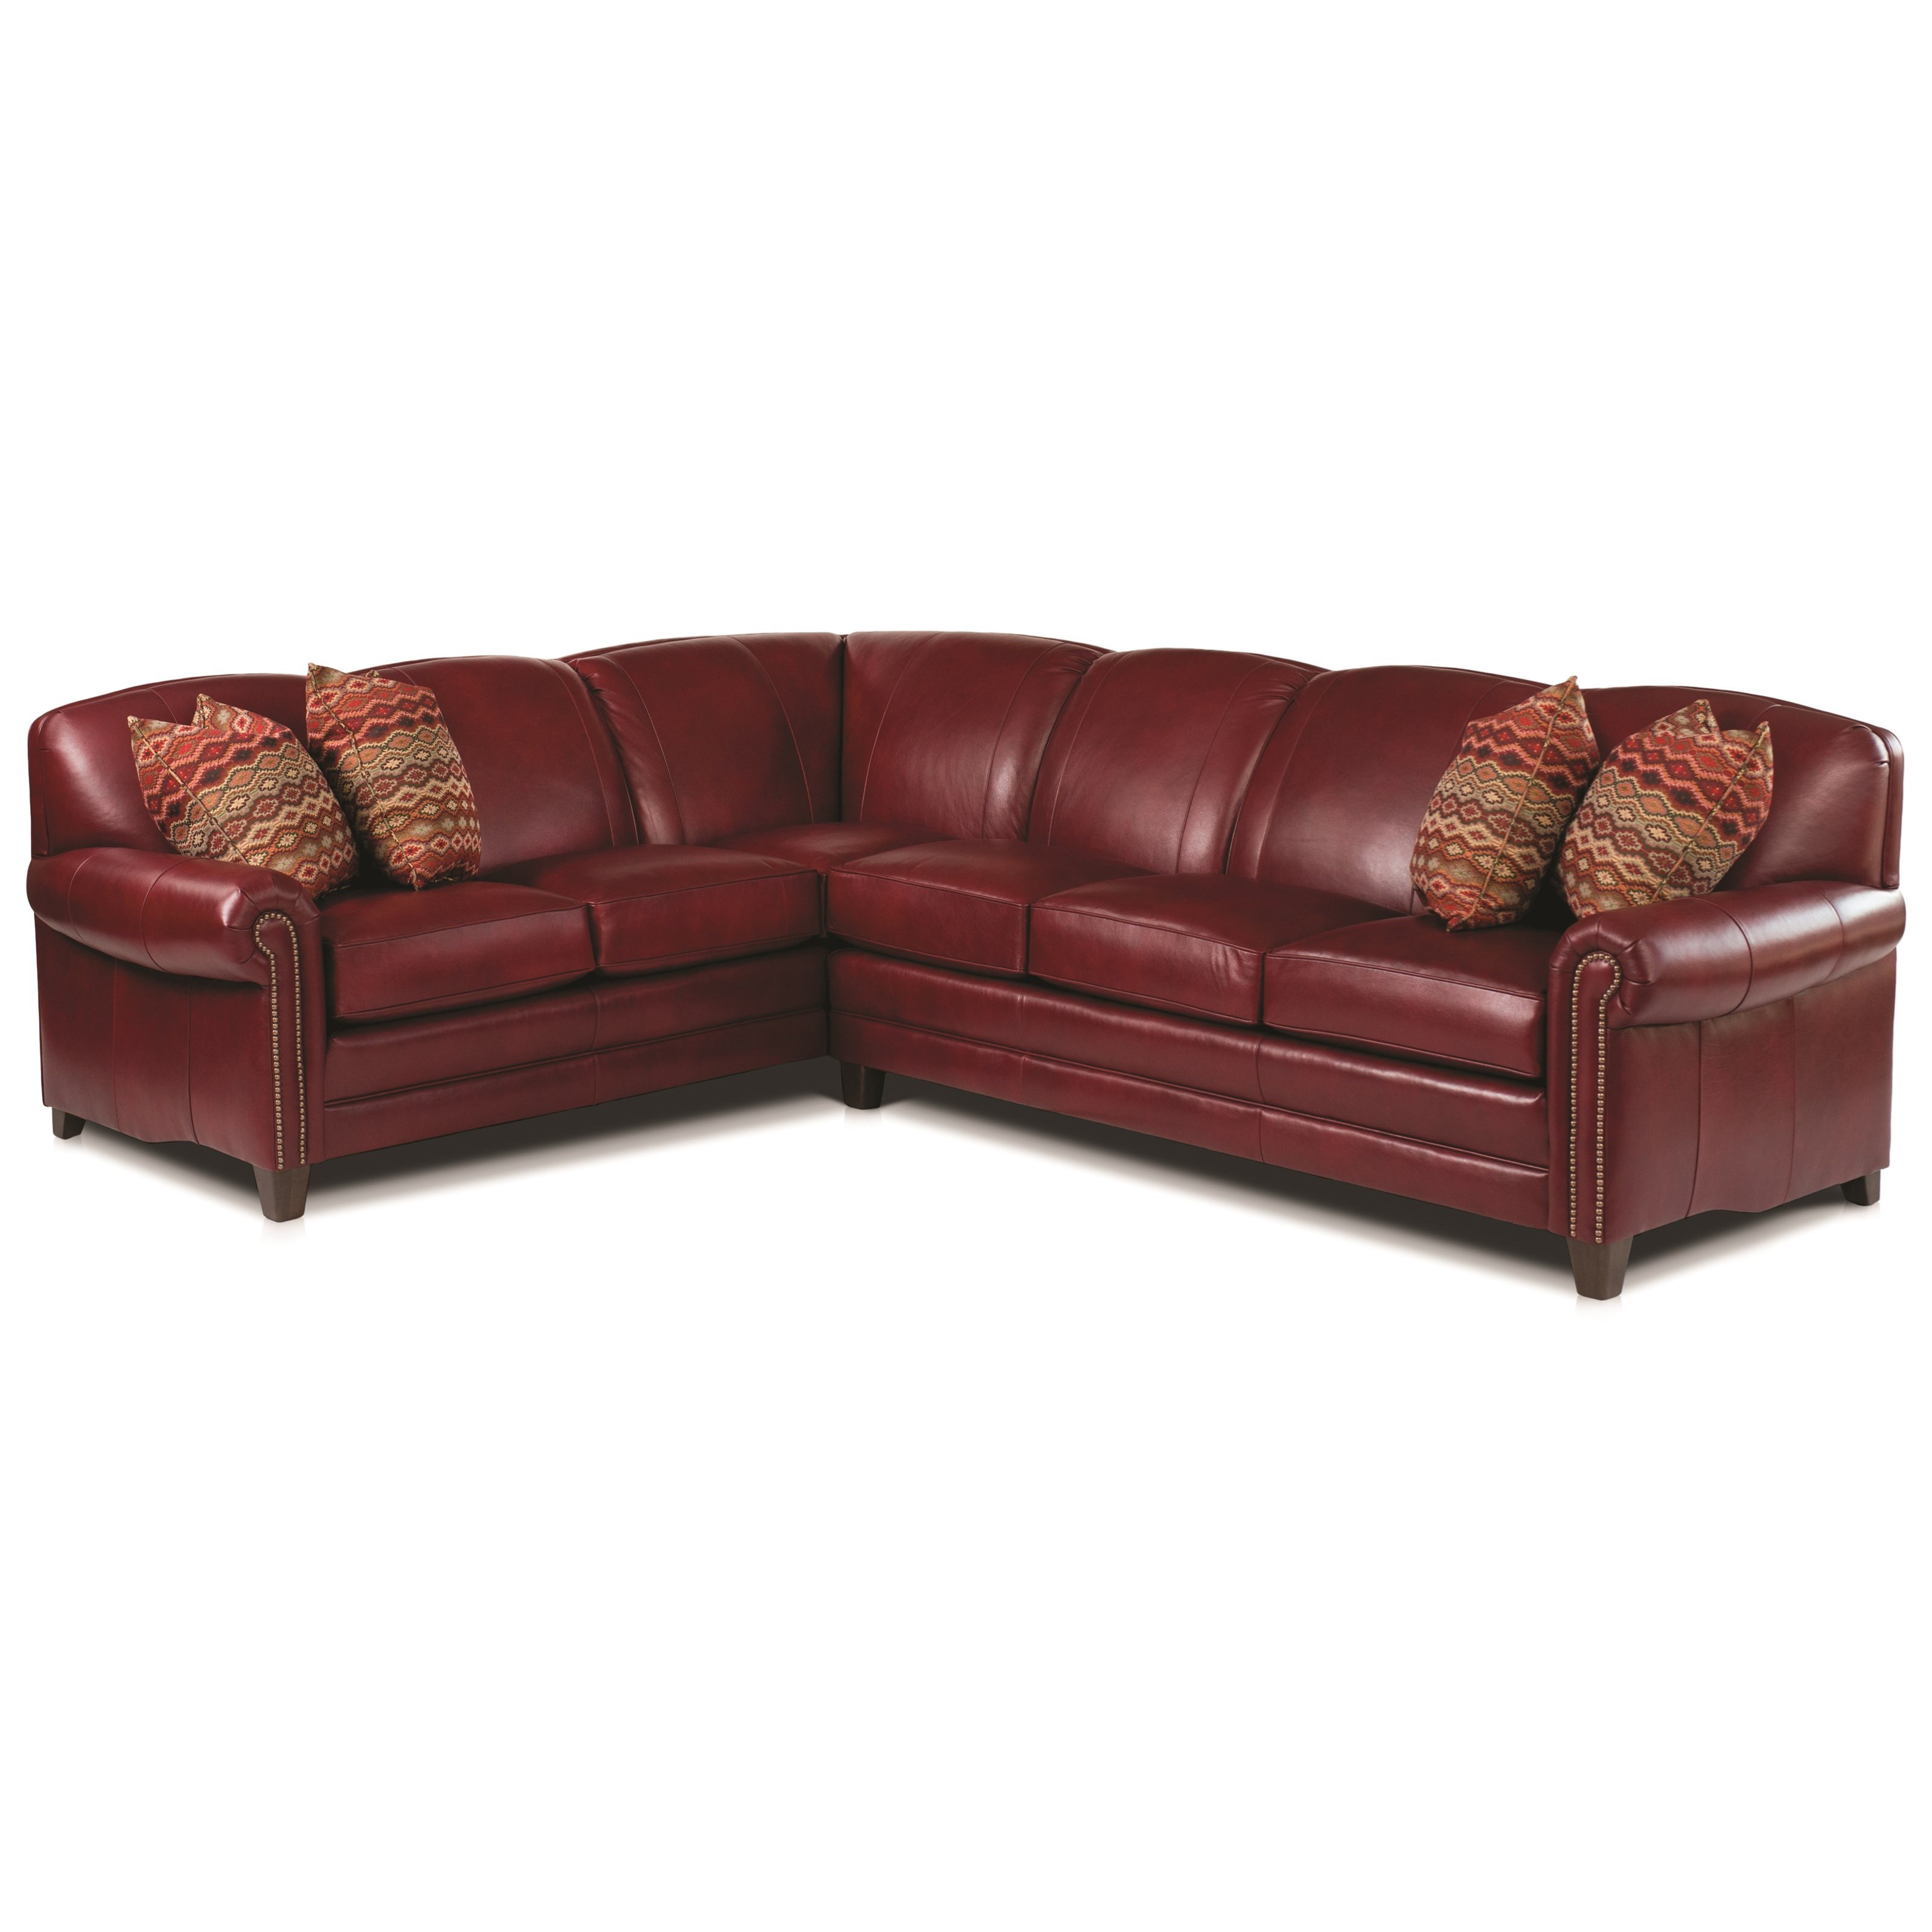 397 Stationary Sectional by Smith Brothers at Rooms for Less